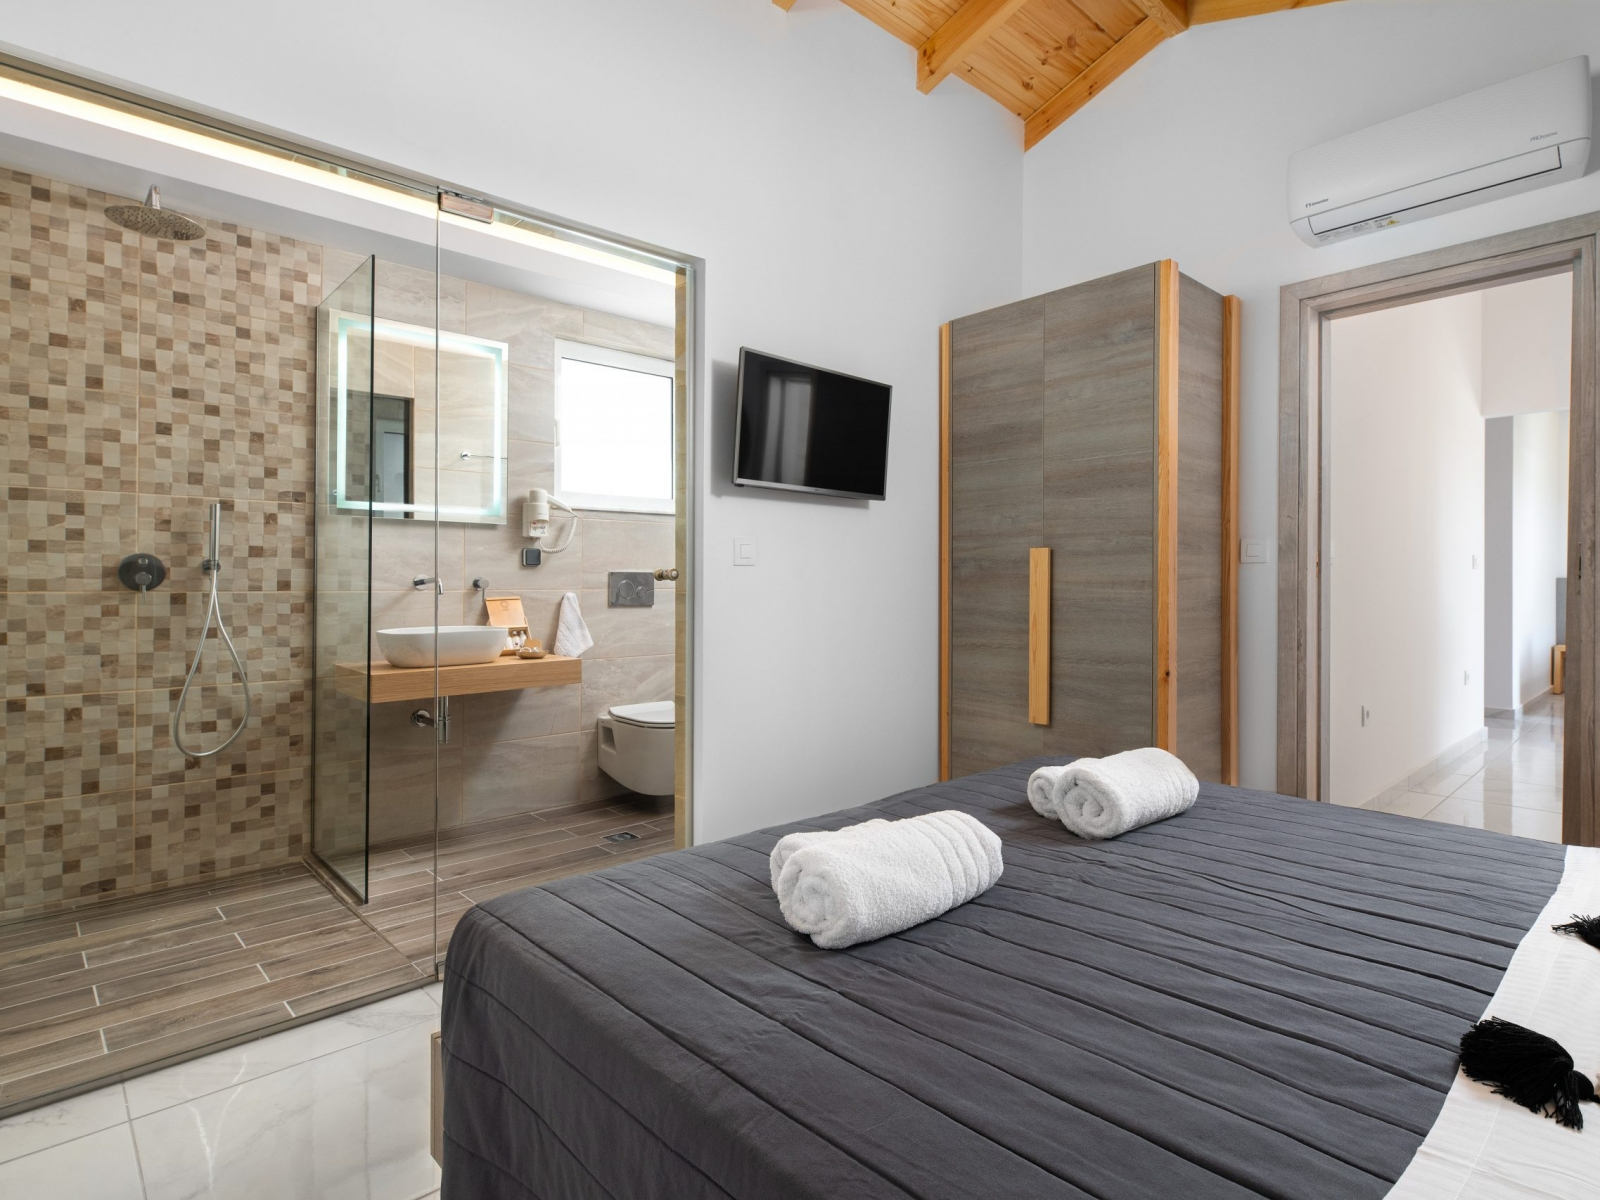 king size bed and en suite bathroom with shower